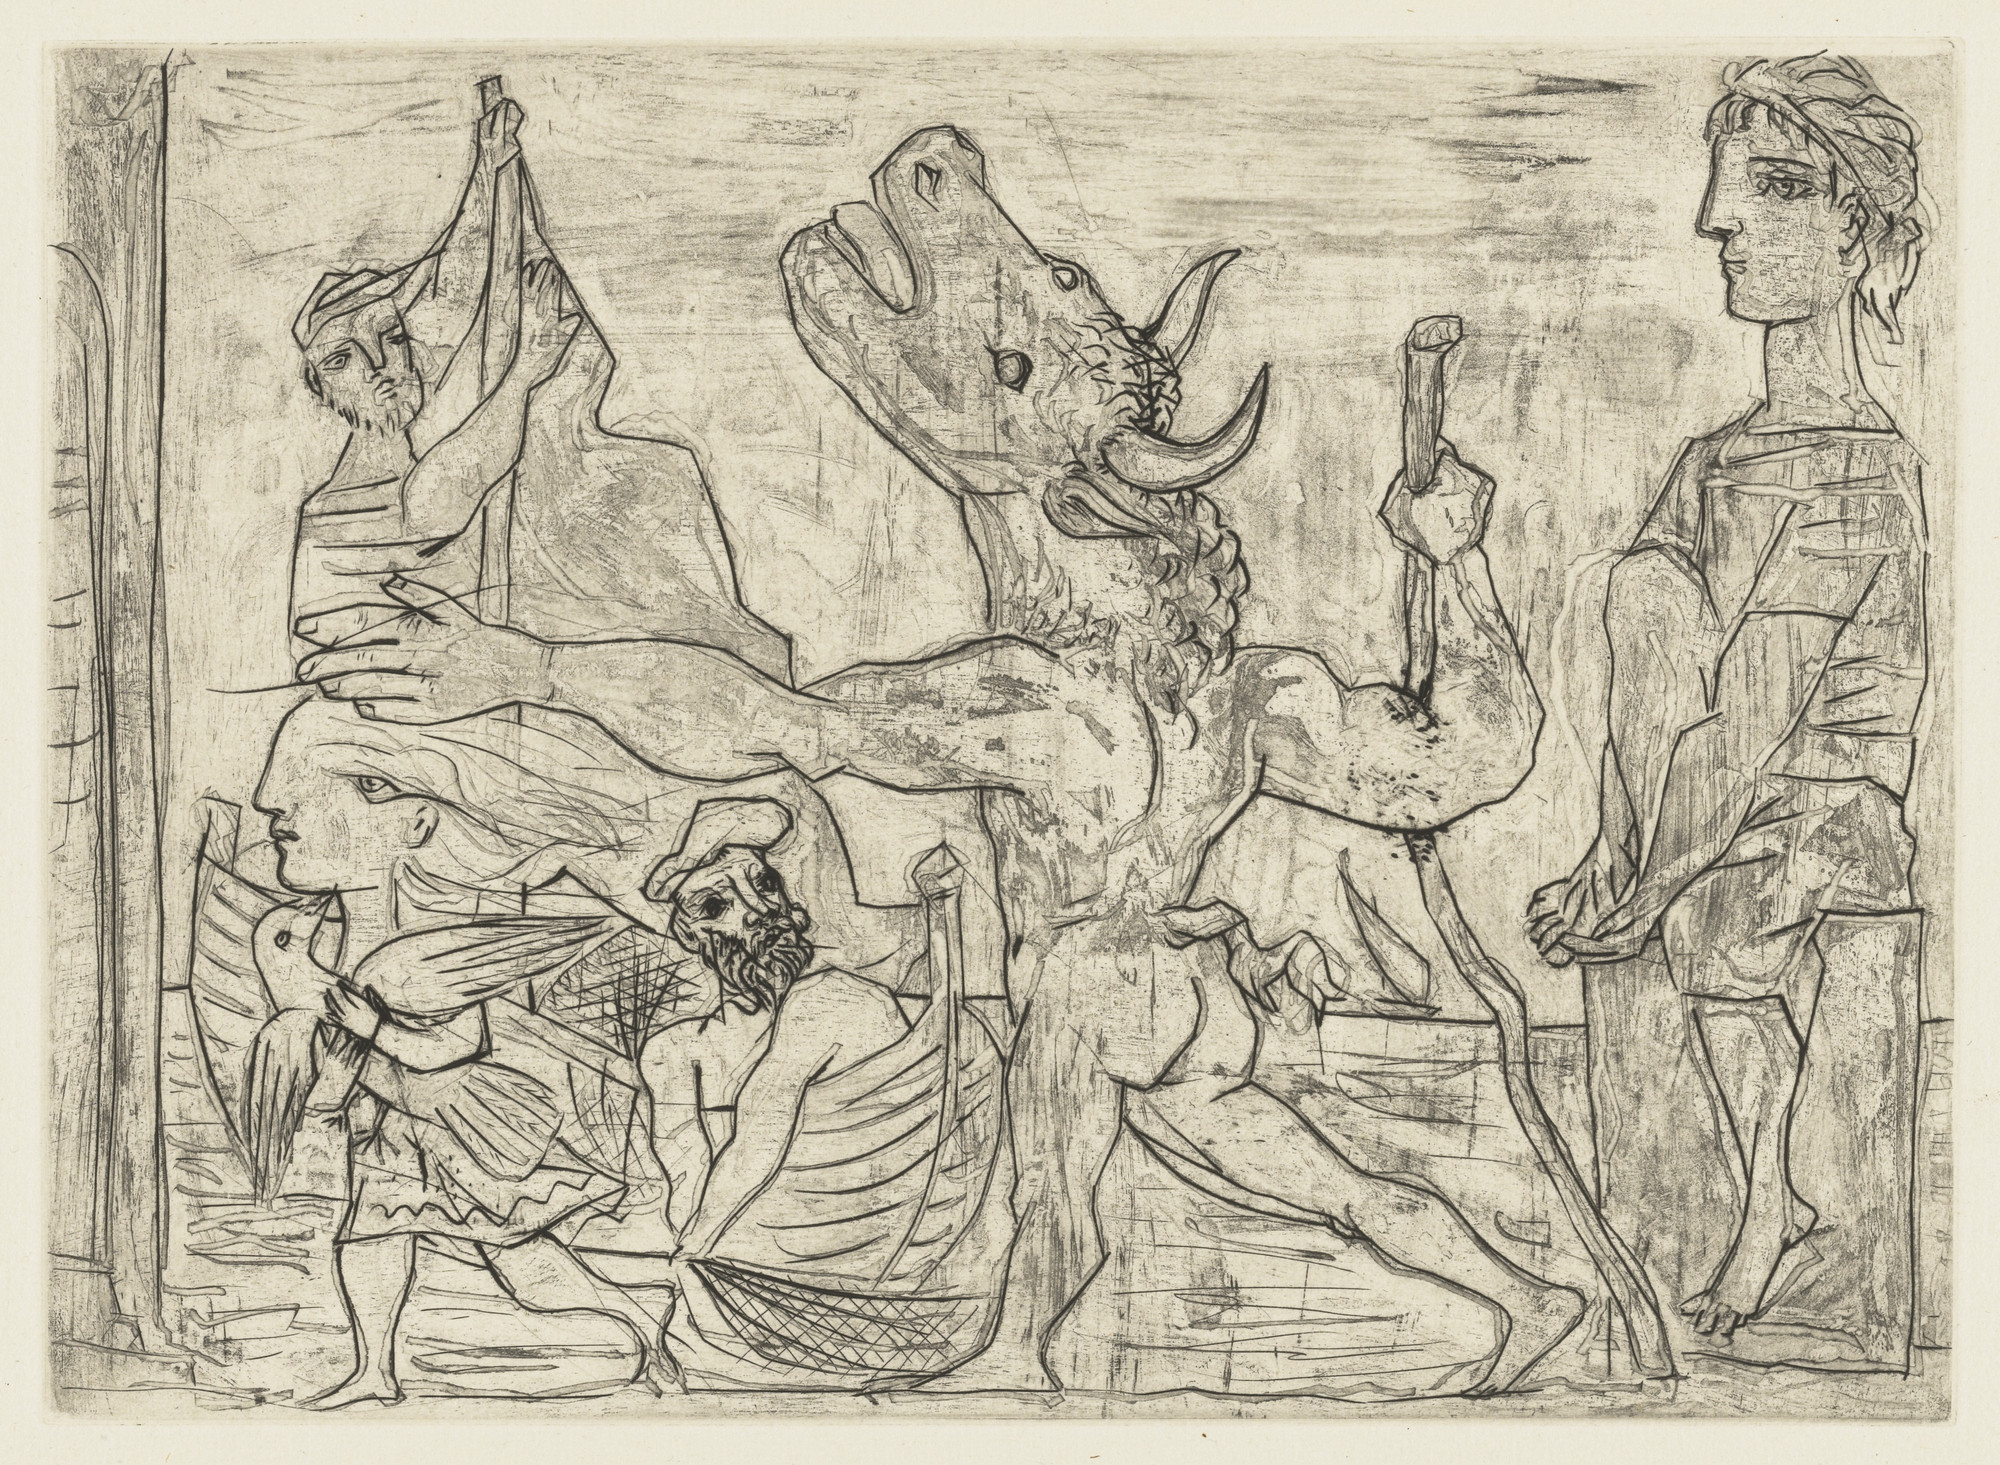 Pablo Picasso. Blind Minotaur Guided by a Little Girl with a Pigeon (Minotaure aveugle guidé par une petite fille au pigeon) from the Vollard Suite (Suite Vollard). 1934, published 1939